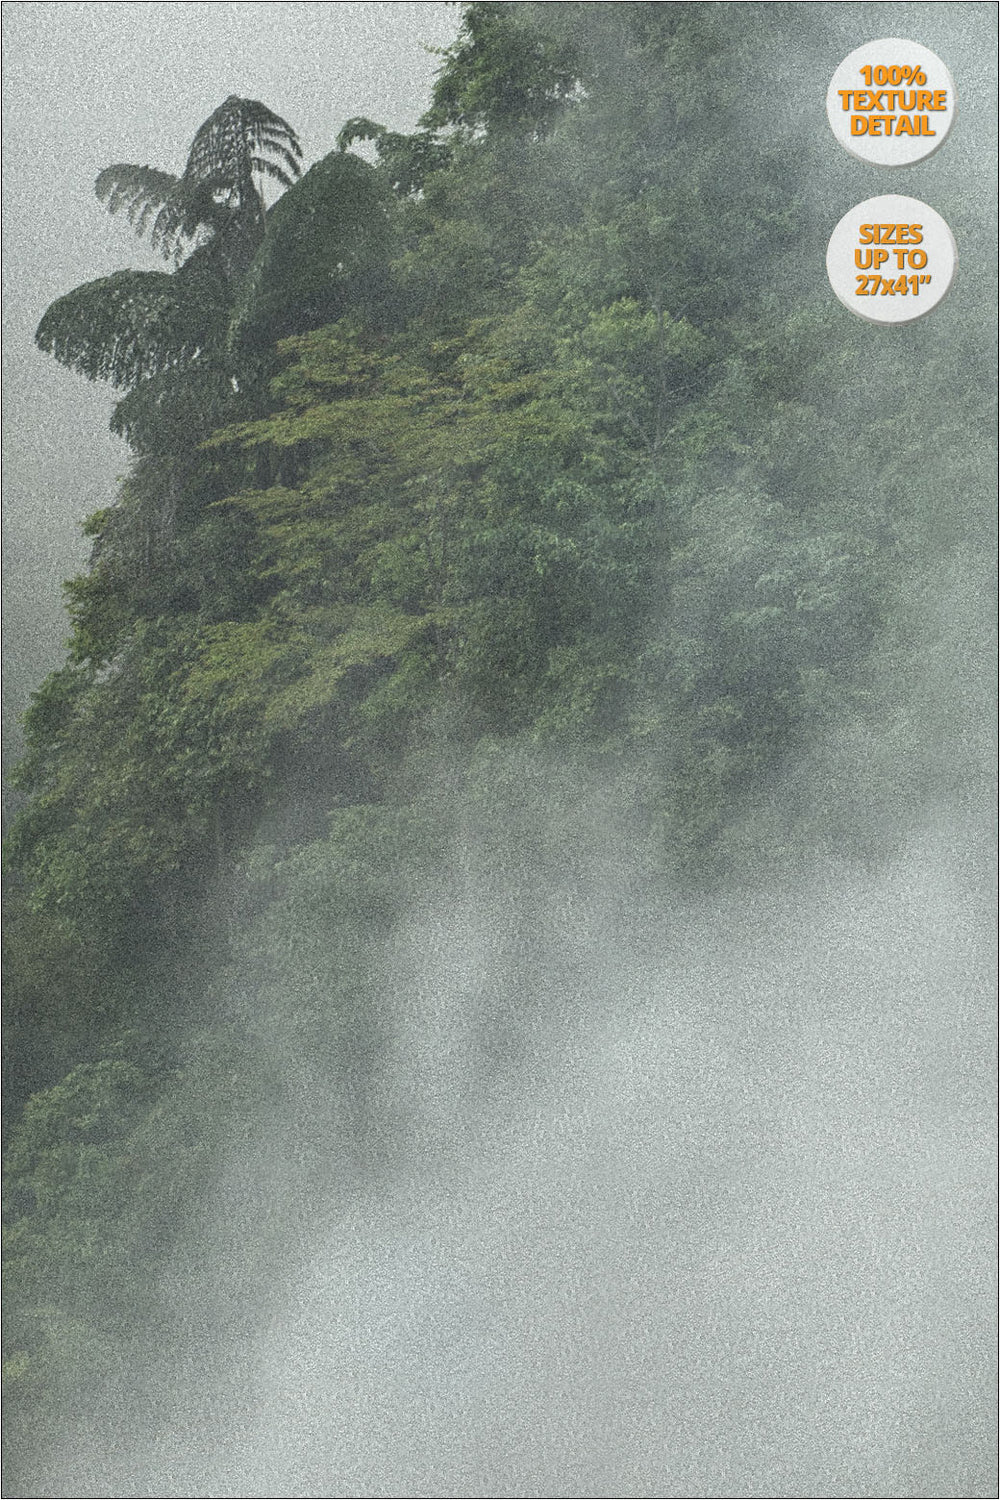 Tree in the fog, Bac Ha, Vietnam. | 100% Print Detail.